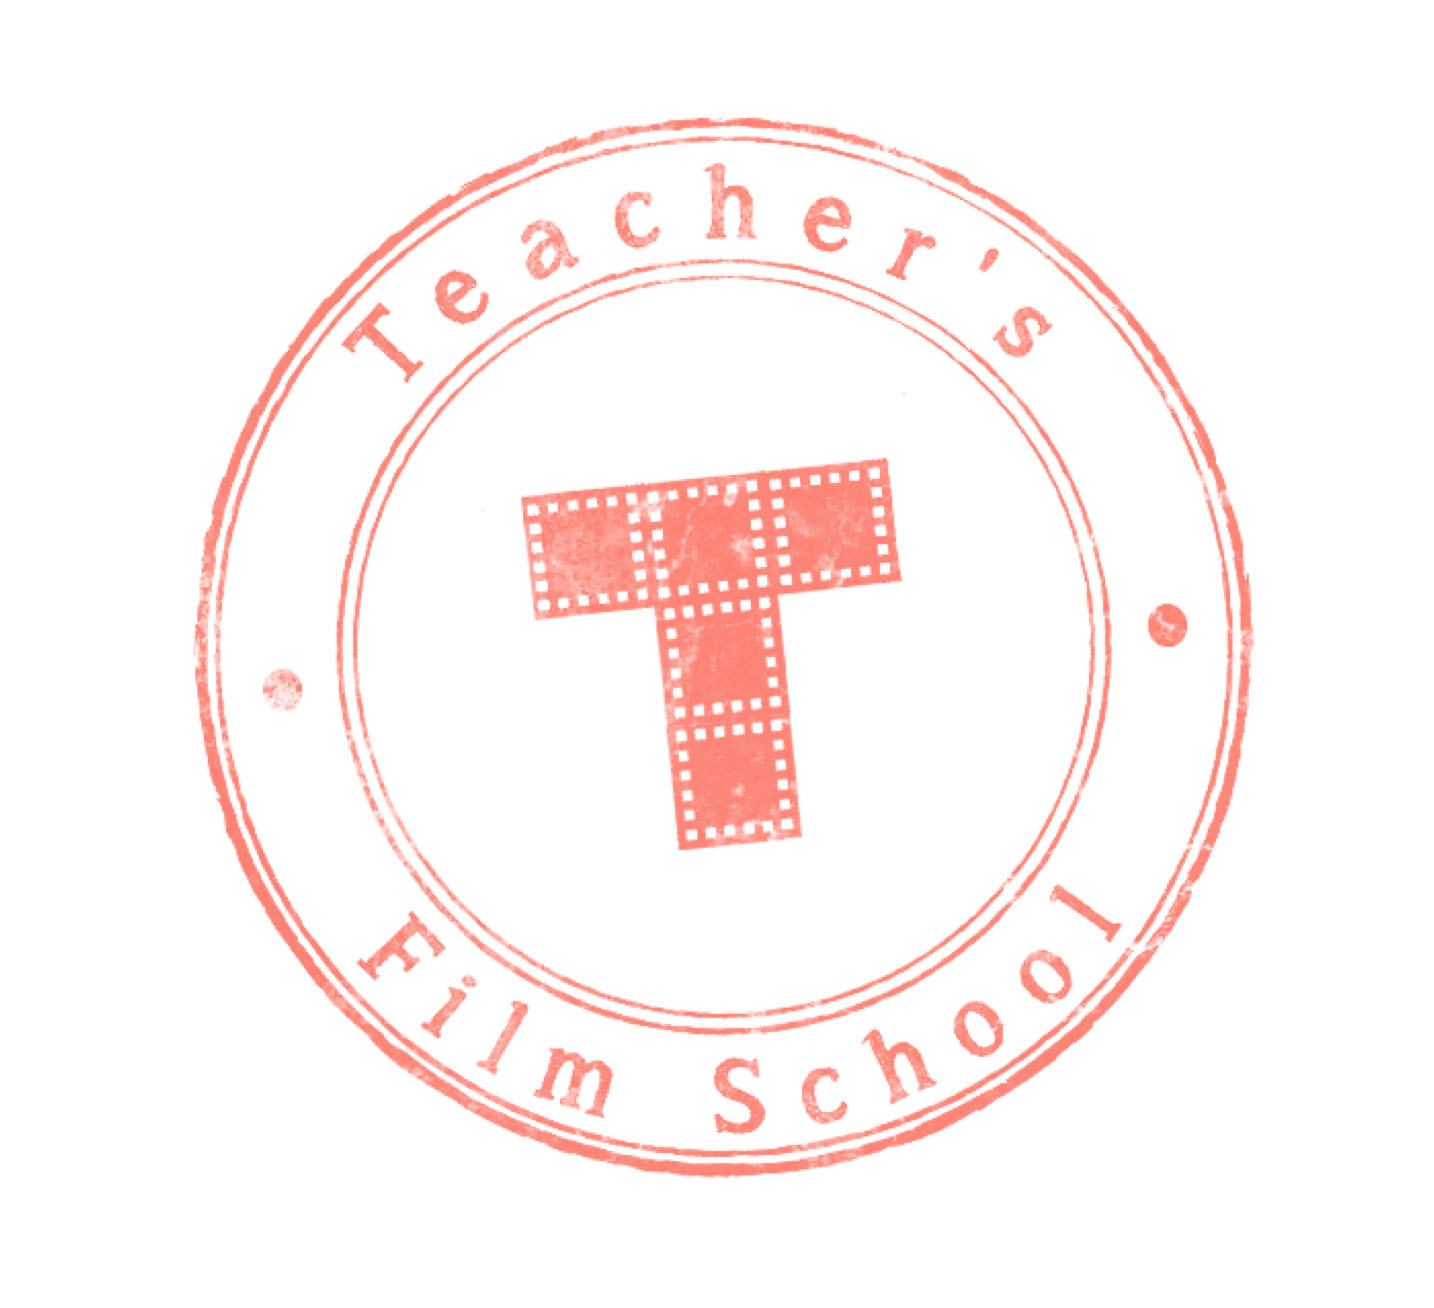 Teacher's Film School